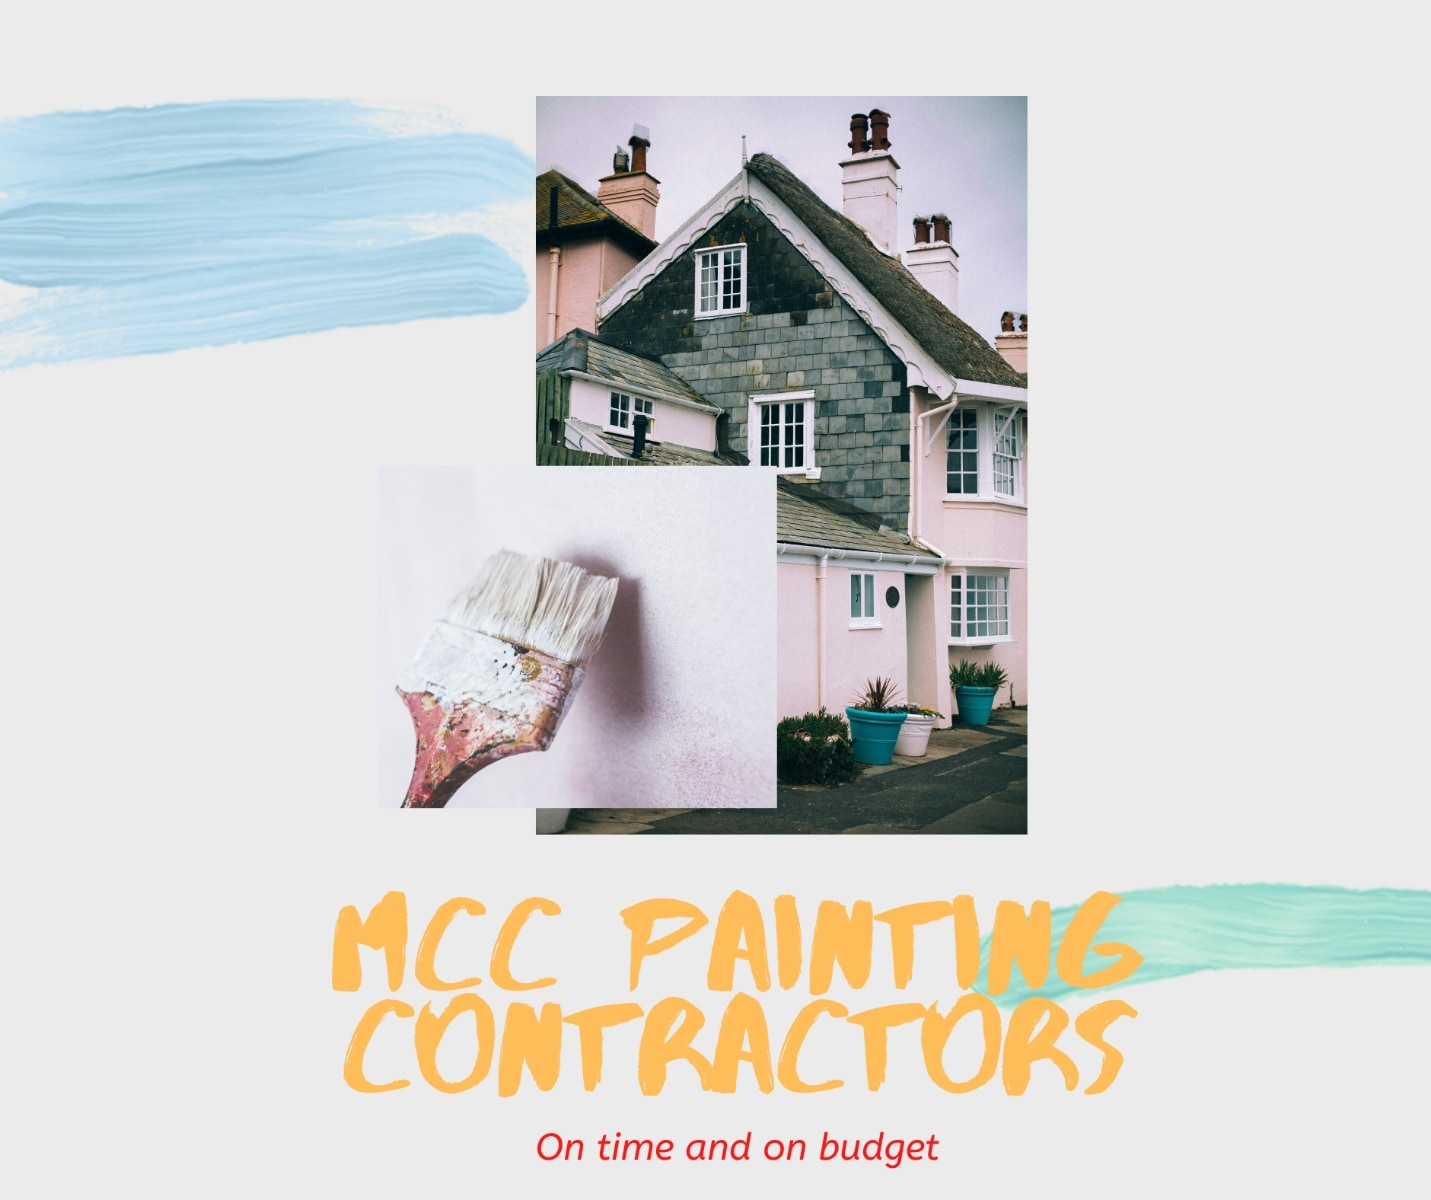 MCC Painting Contractors